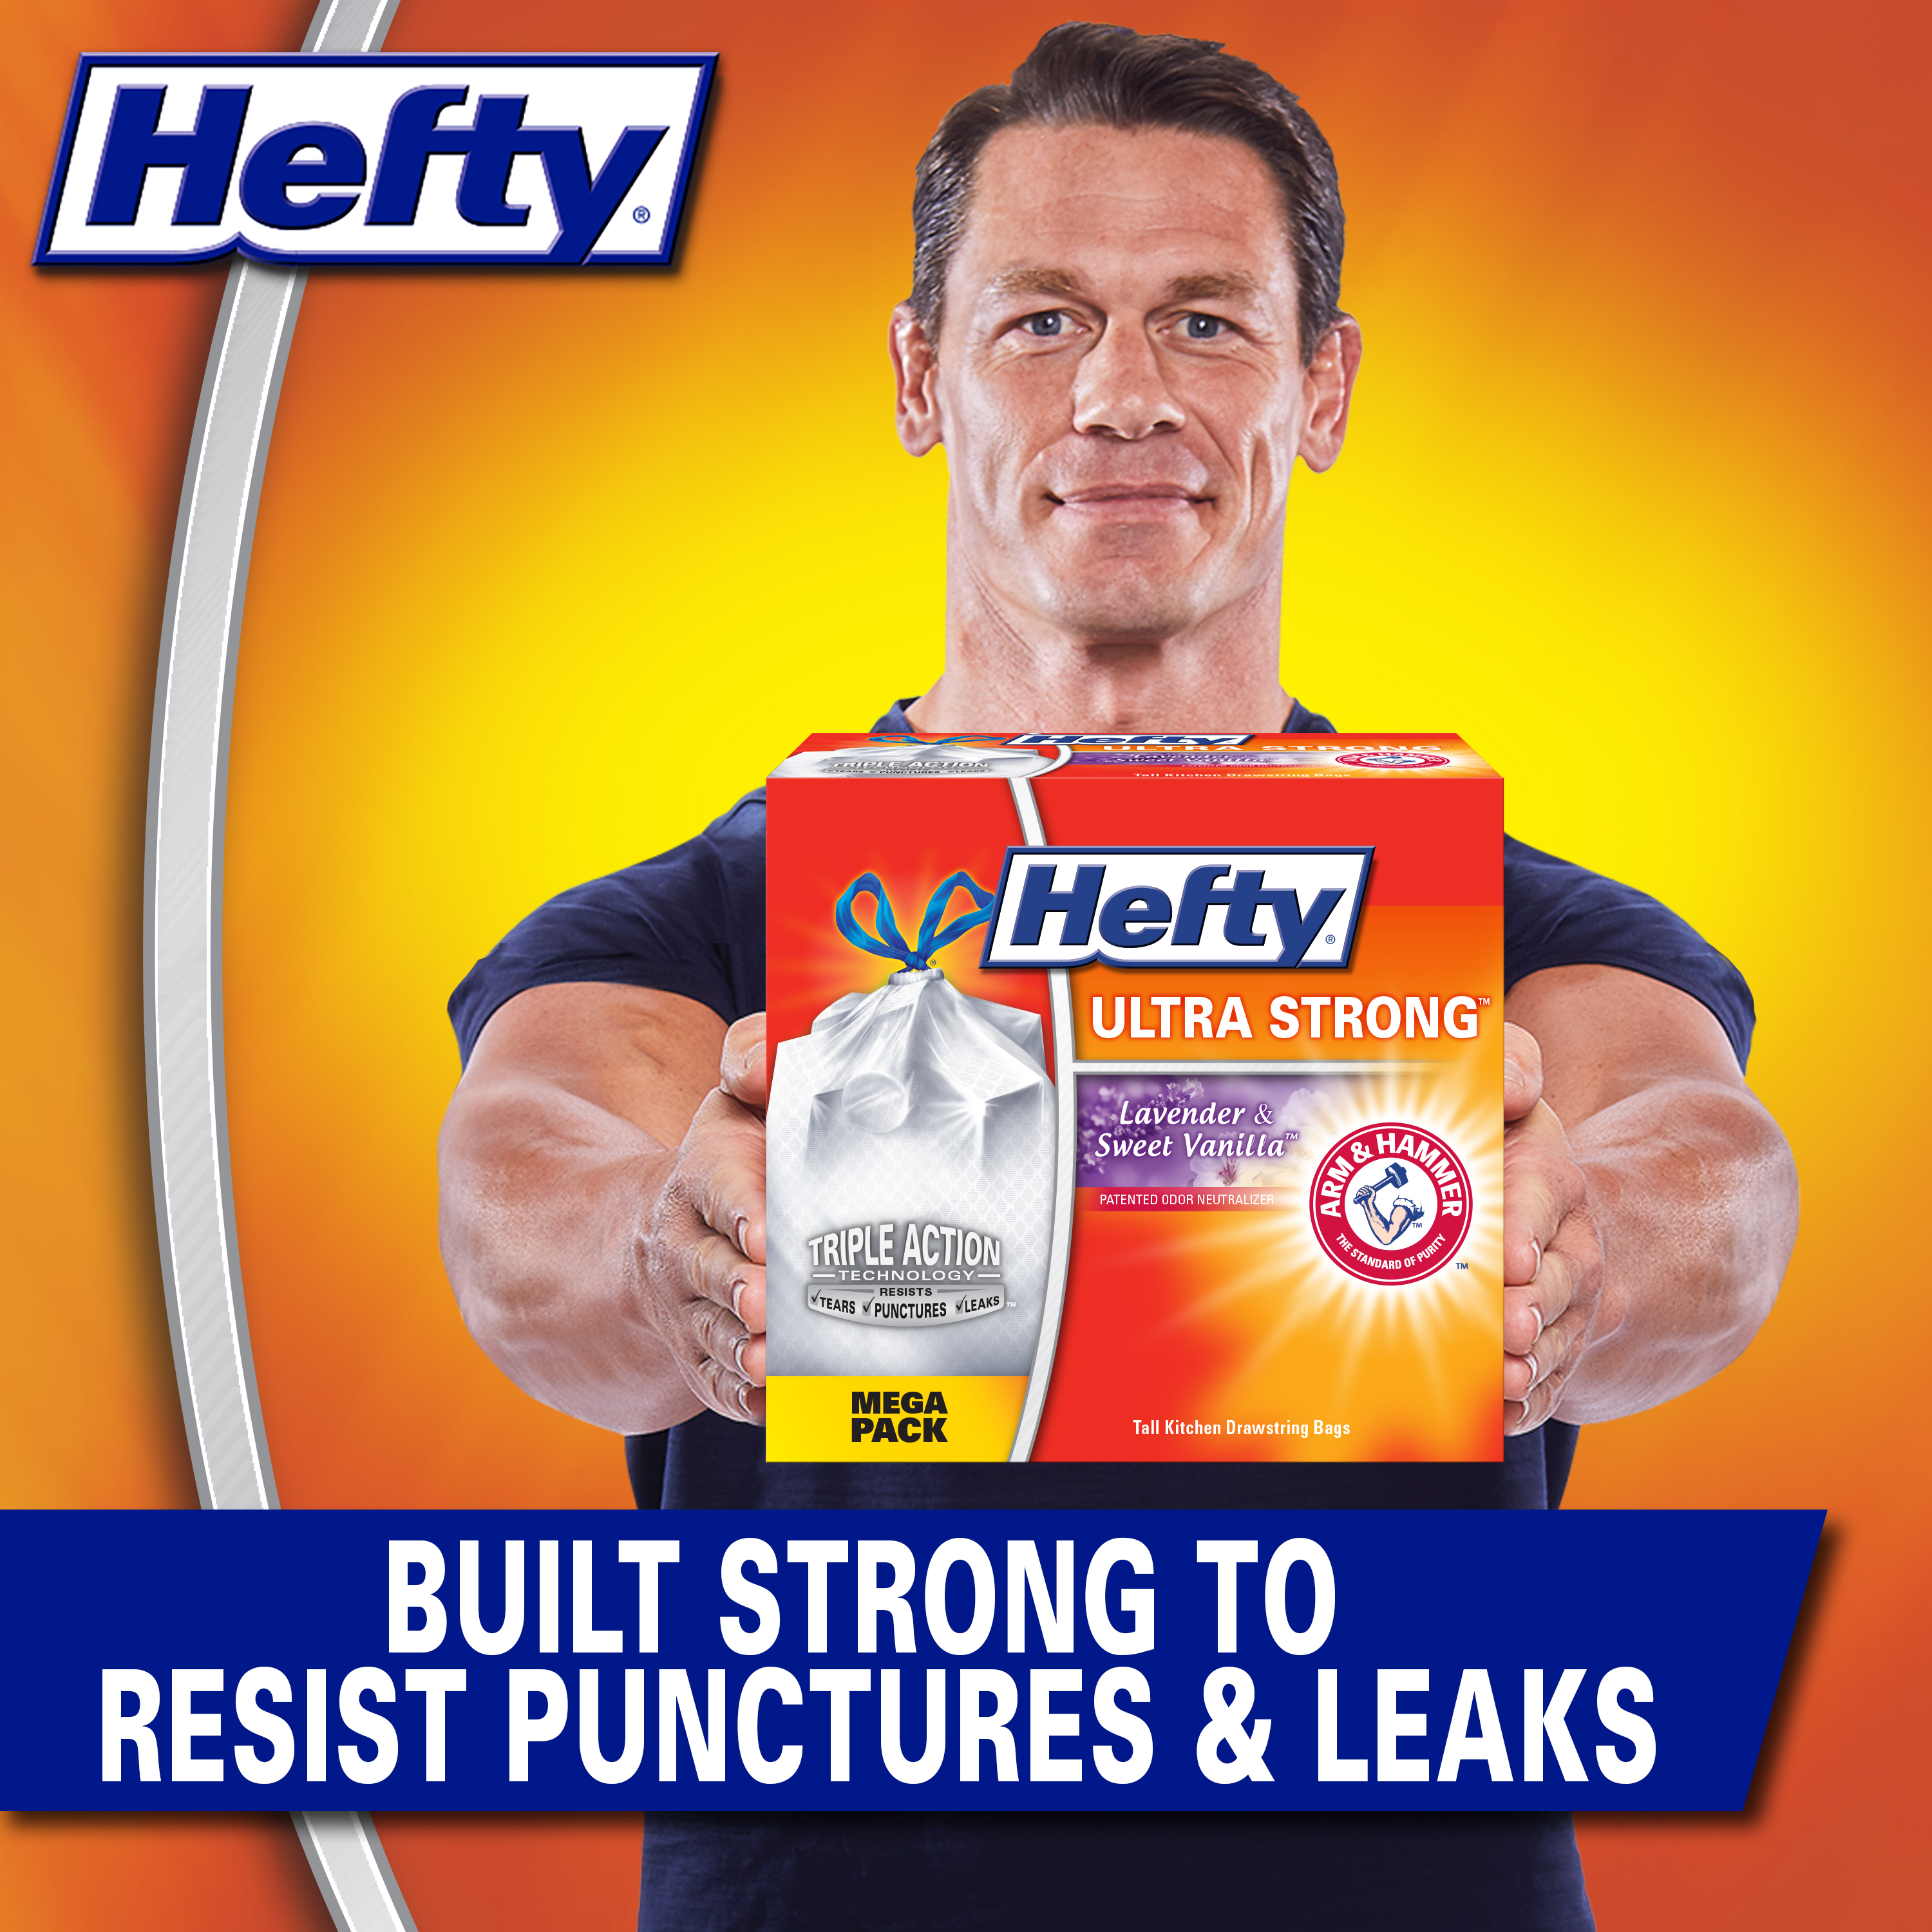 Hefty Ultra Strong Tall Kitchen Trash Bags, Lavender & Sweet Vanilla Scent, 13 Gallon, 80 Count